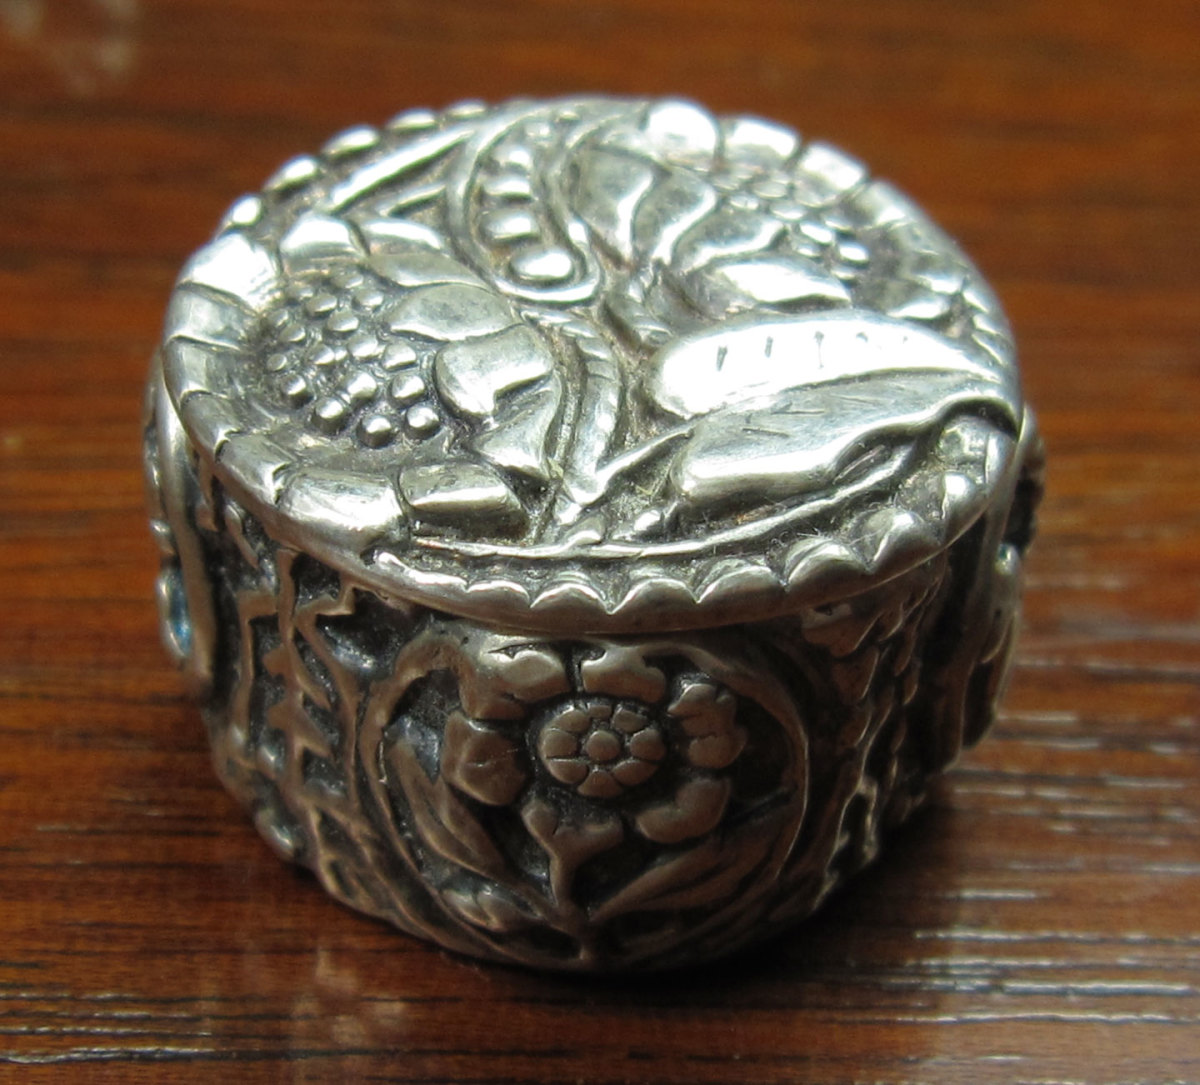 "Round fine silver lidded box (approx. 1¼"" diameter). Top of lid and four textured appliqués around sides made from my own molds of vintage & antique buttons."